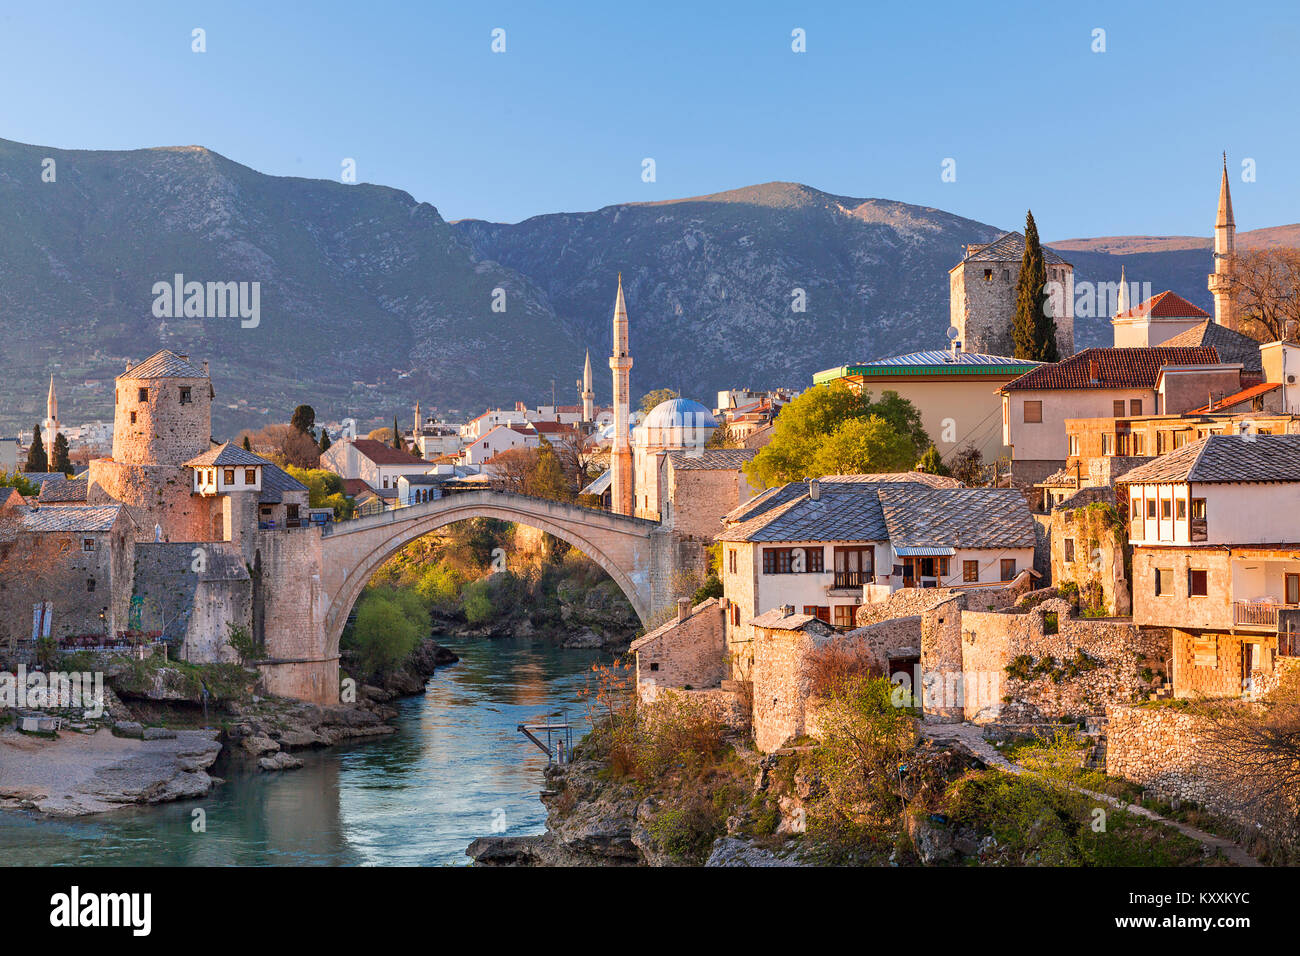 Skyline of Mostar with the Mostar Bridge, houses and minarets, at the sunset in Bosnia and Herzegovina. - Stock Image